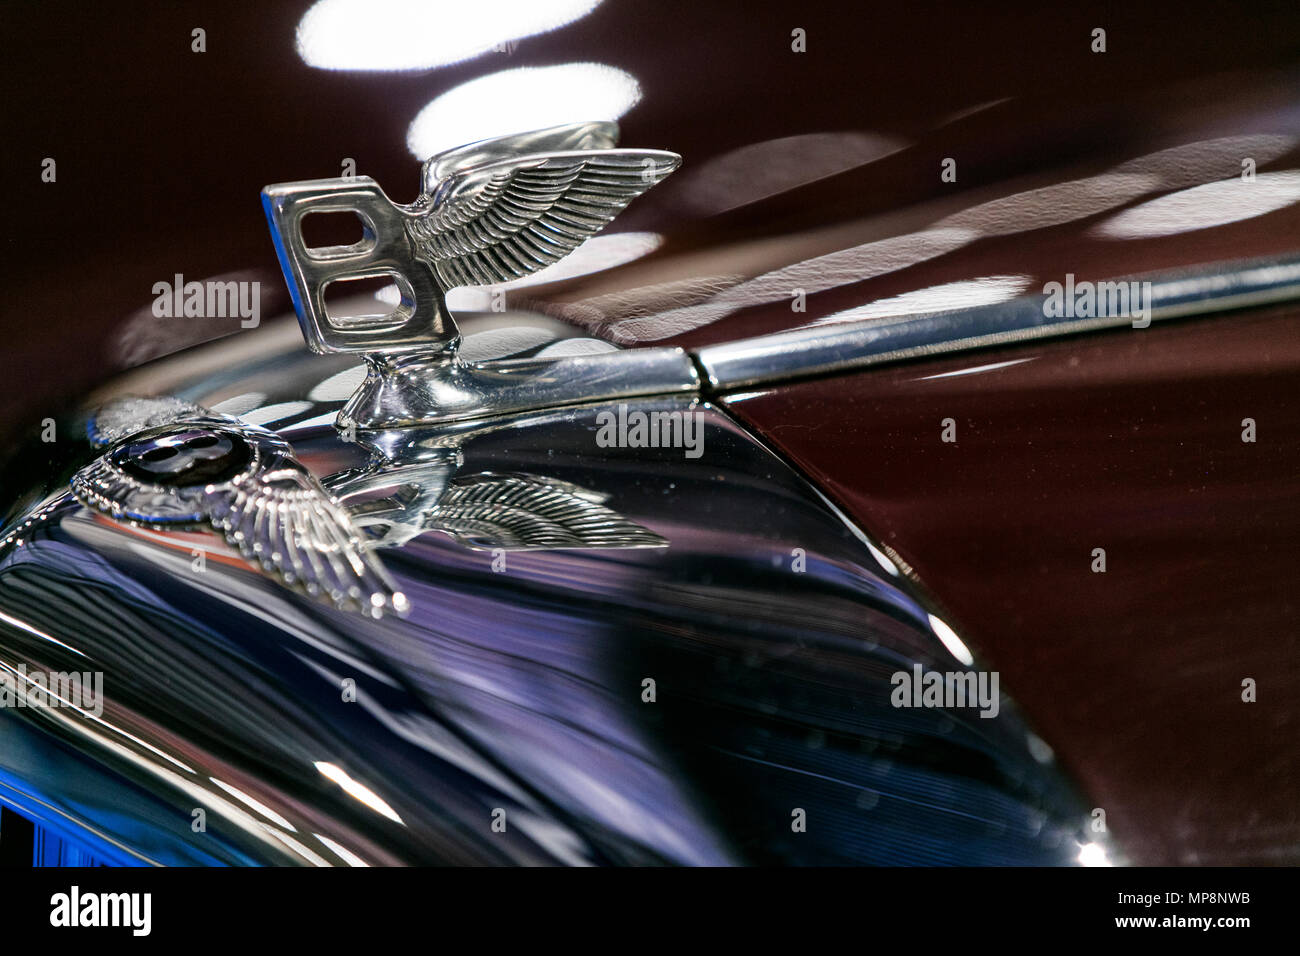 Bently car stock photos bently car stock images alamy london uk may 18th 2018 bently car at the confused london voltagebd Image collections